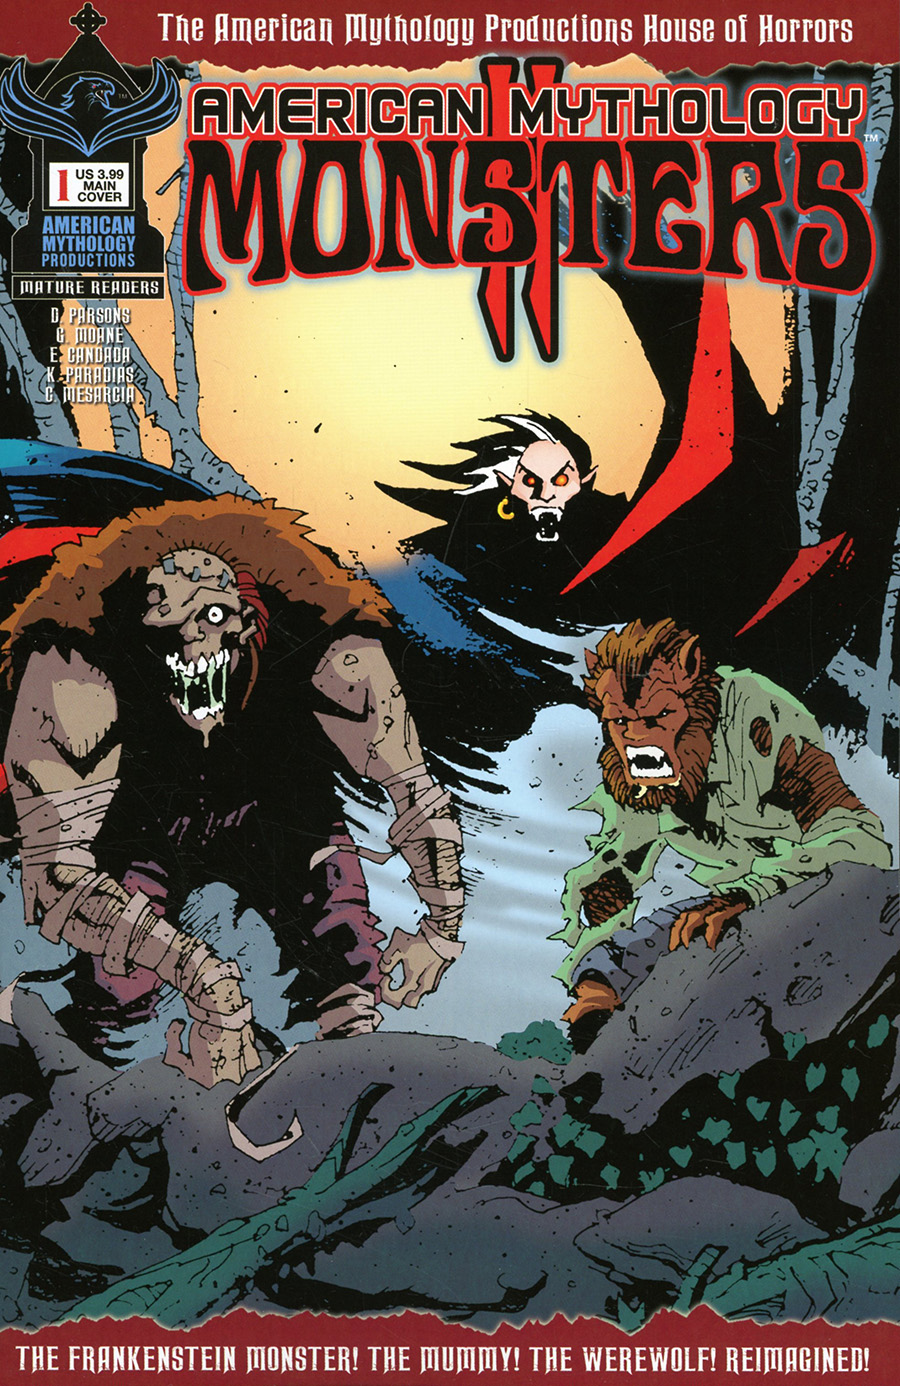 American Mythology Monsters Vol 2 #1 Cover A Regular Neil Vokes Cover